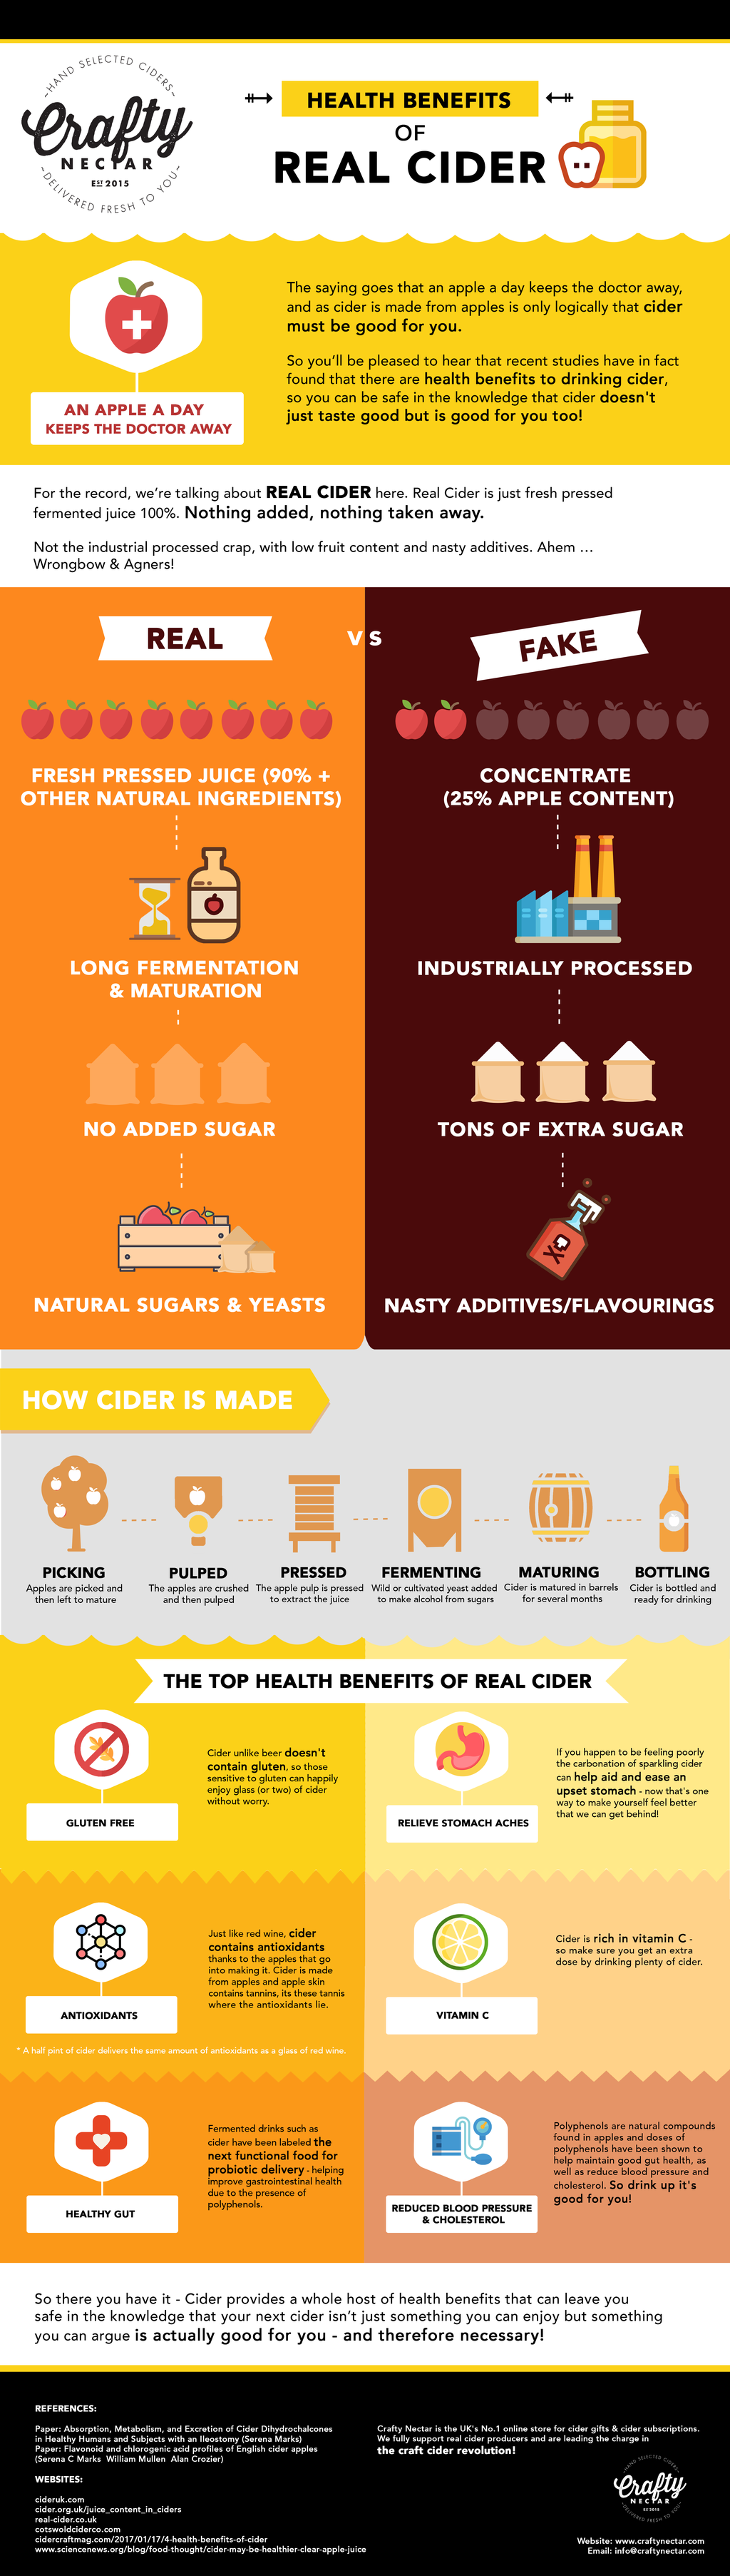 cider-is-good-for-you